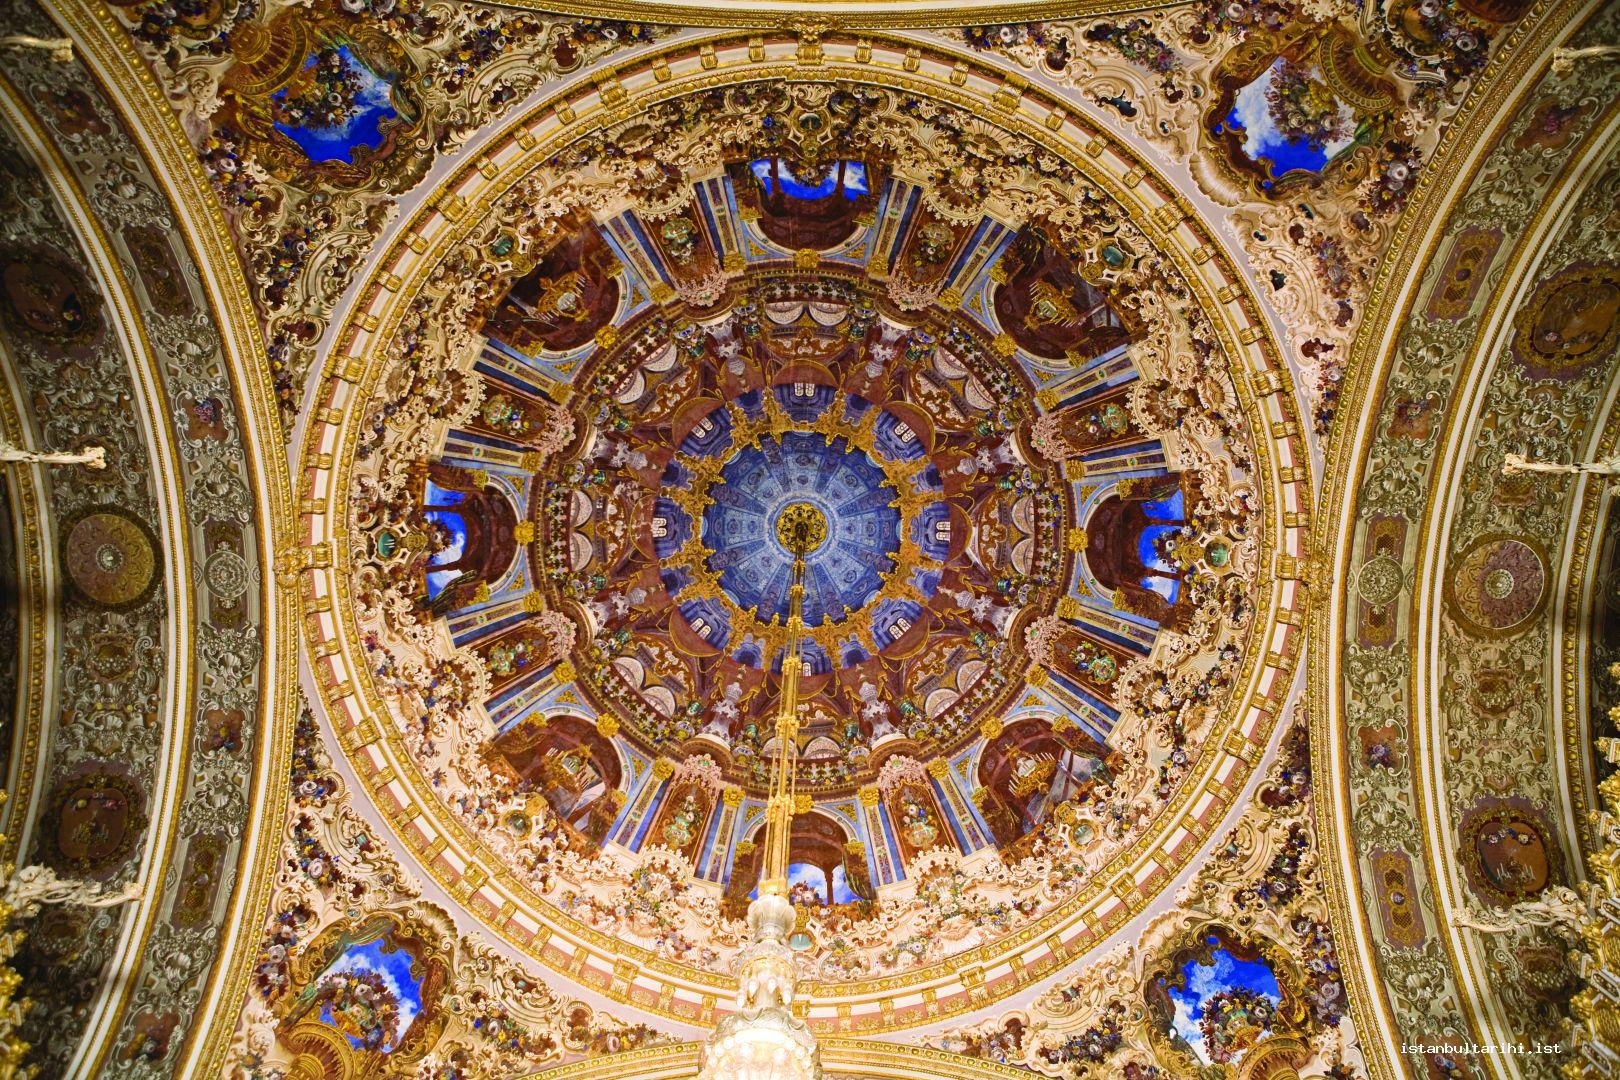 7- The dome of Muayede Hall in Dolmabahçe Palace